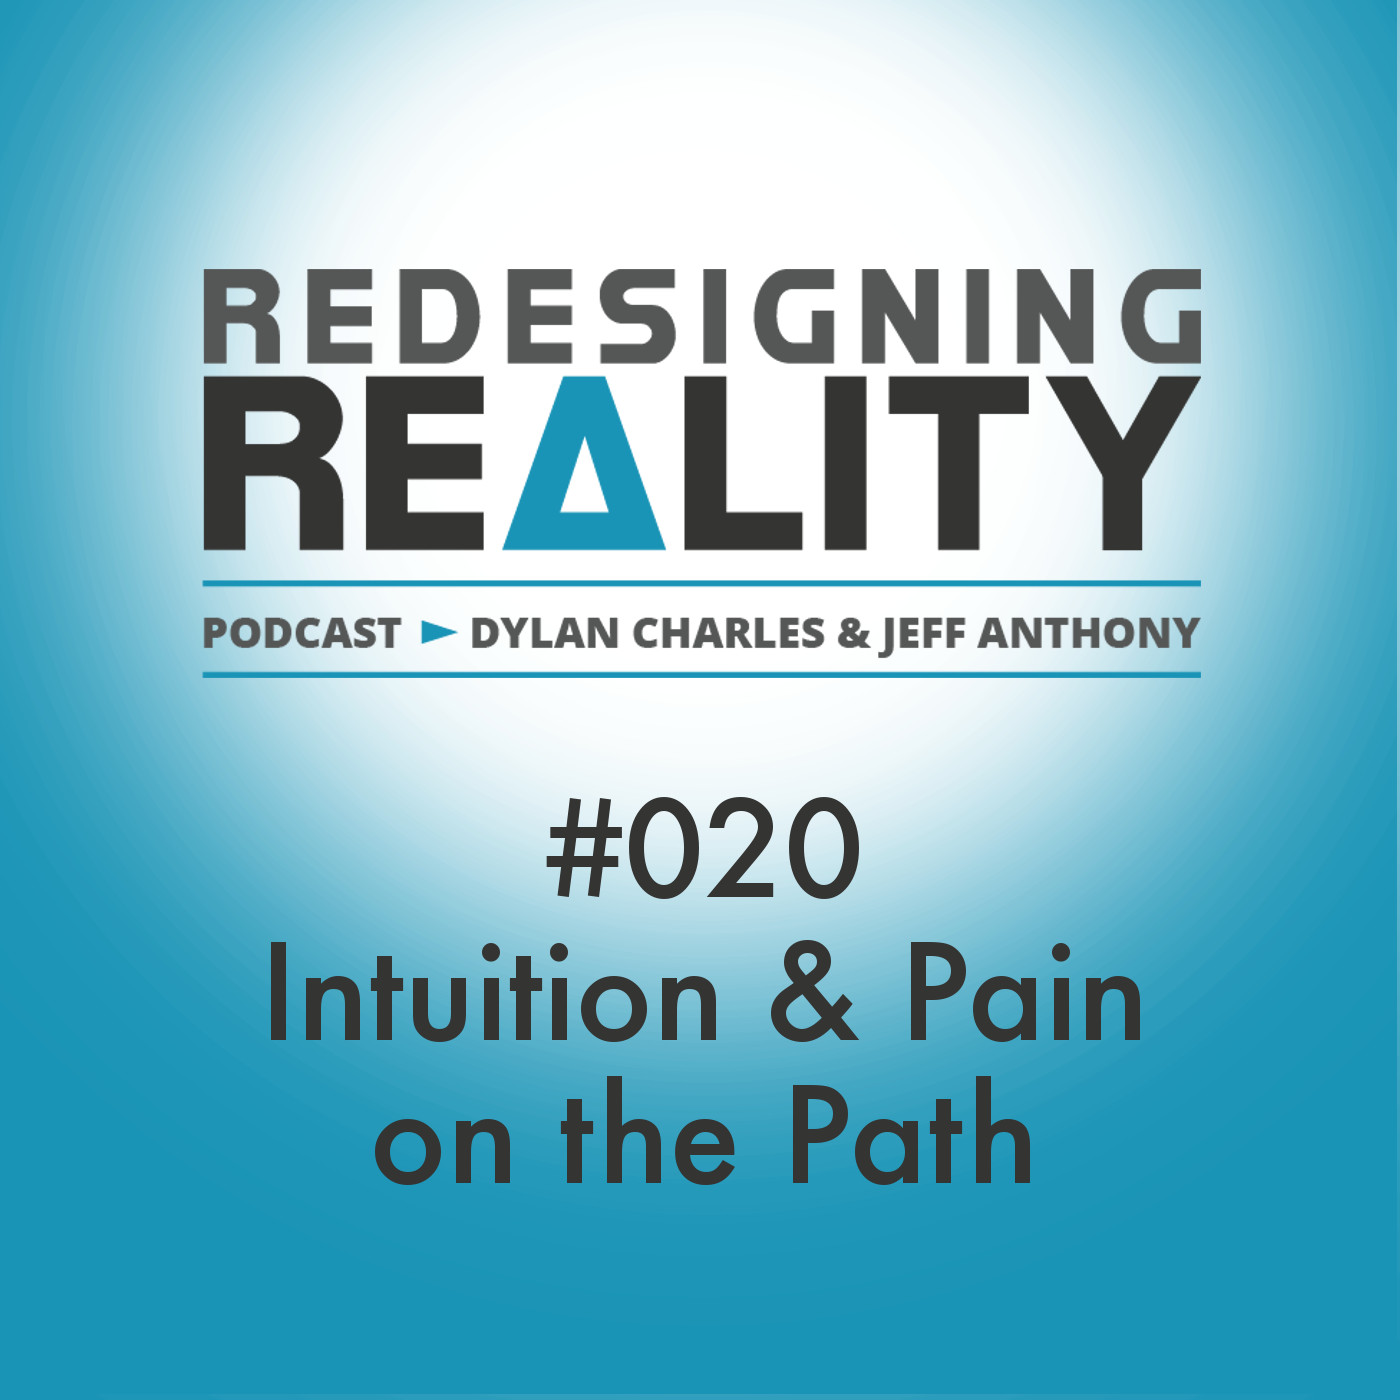 Artwork for Redesigning Reality #020 - Intuition & Pain on the Path